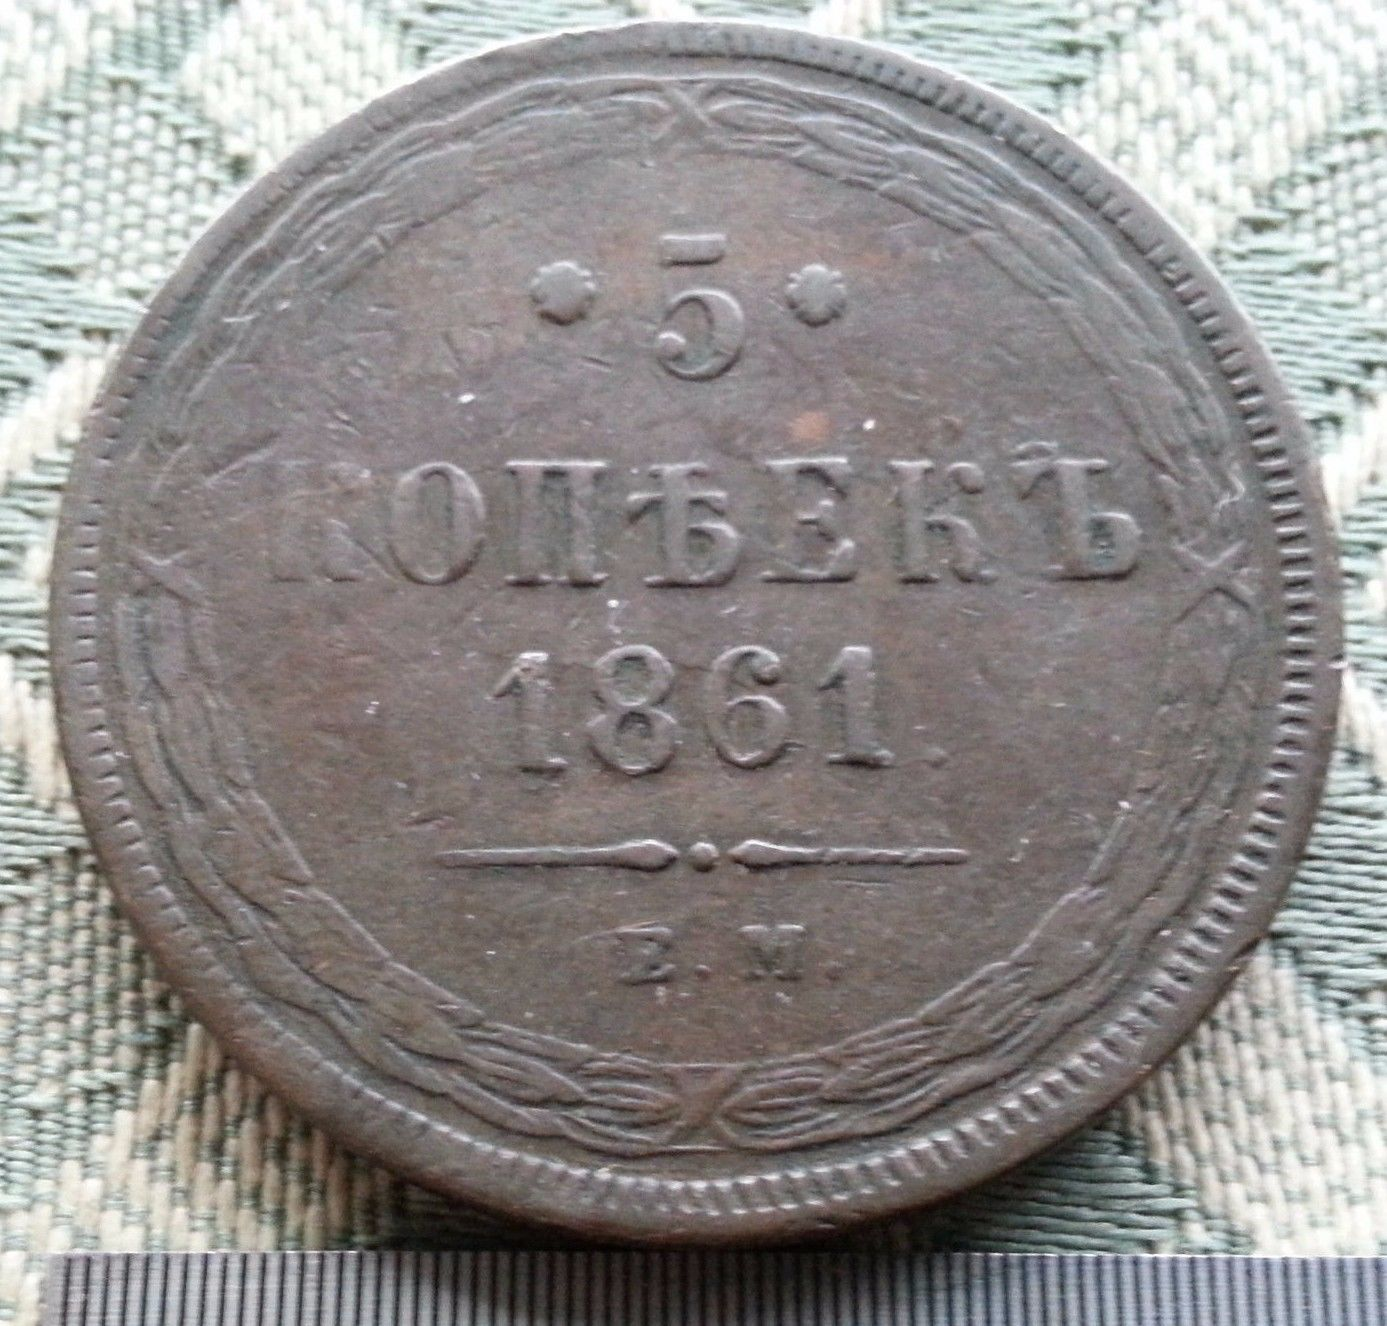 Antique 1861 coin 5 kopeks Emperor Alexander II of Russian Empire 19thC SPB